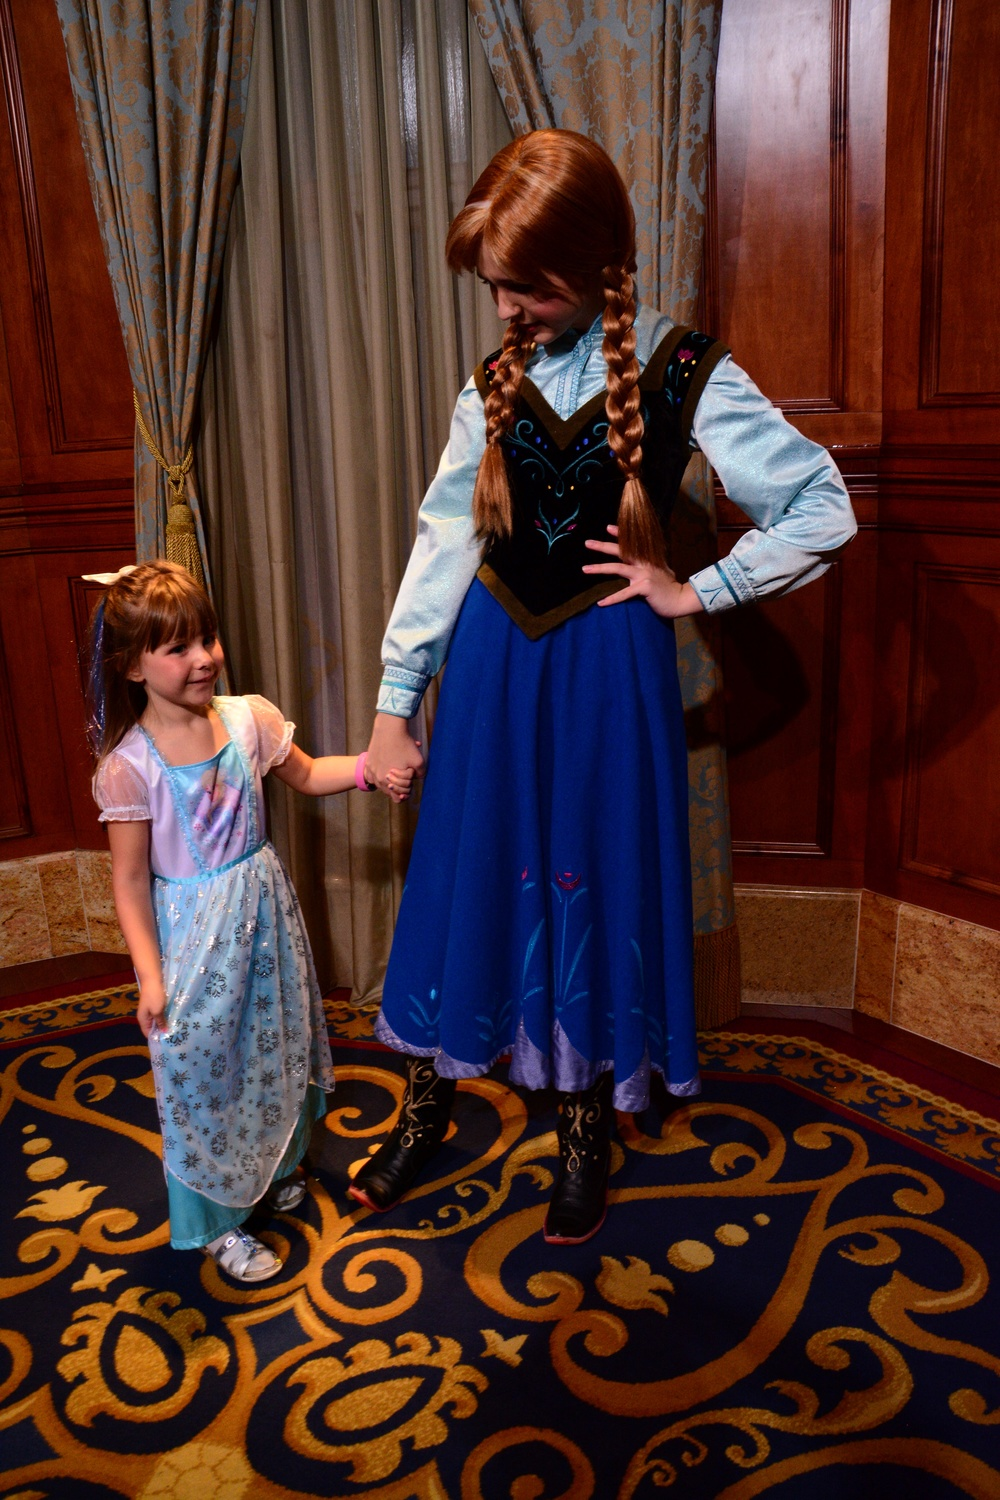 Emery meeting Princess anna